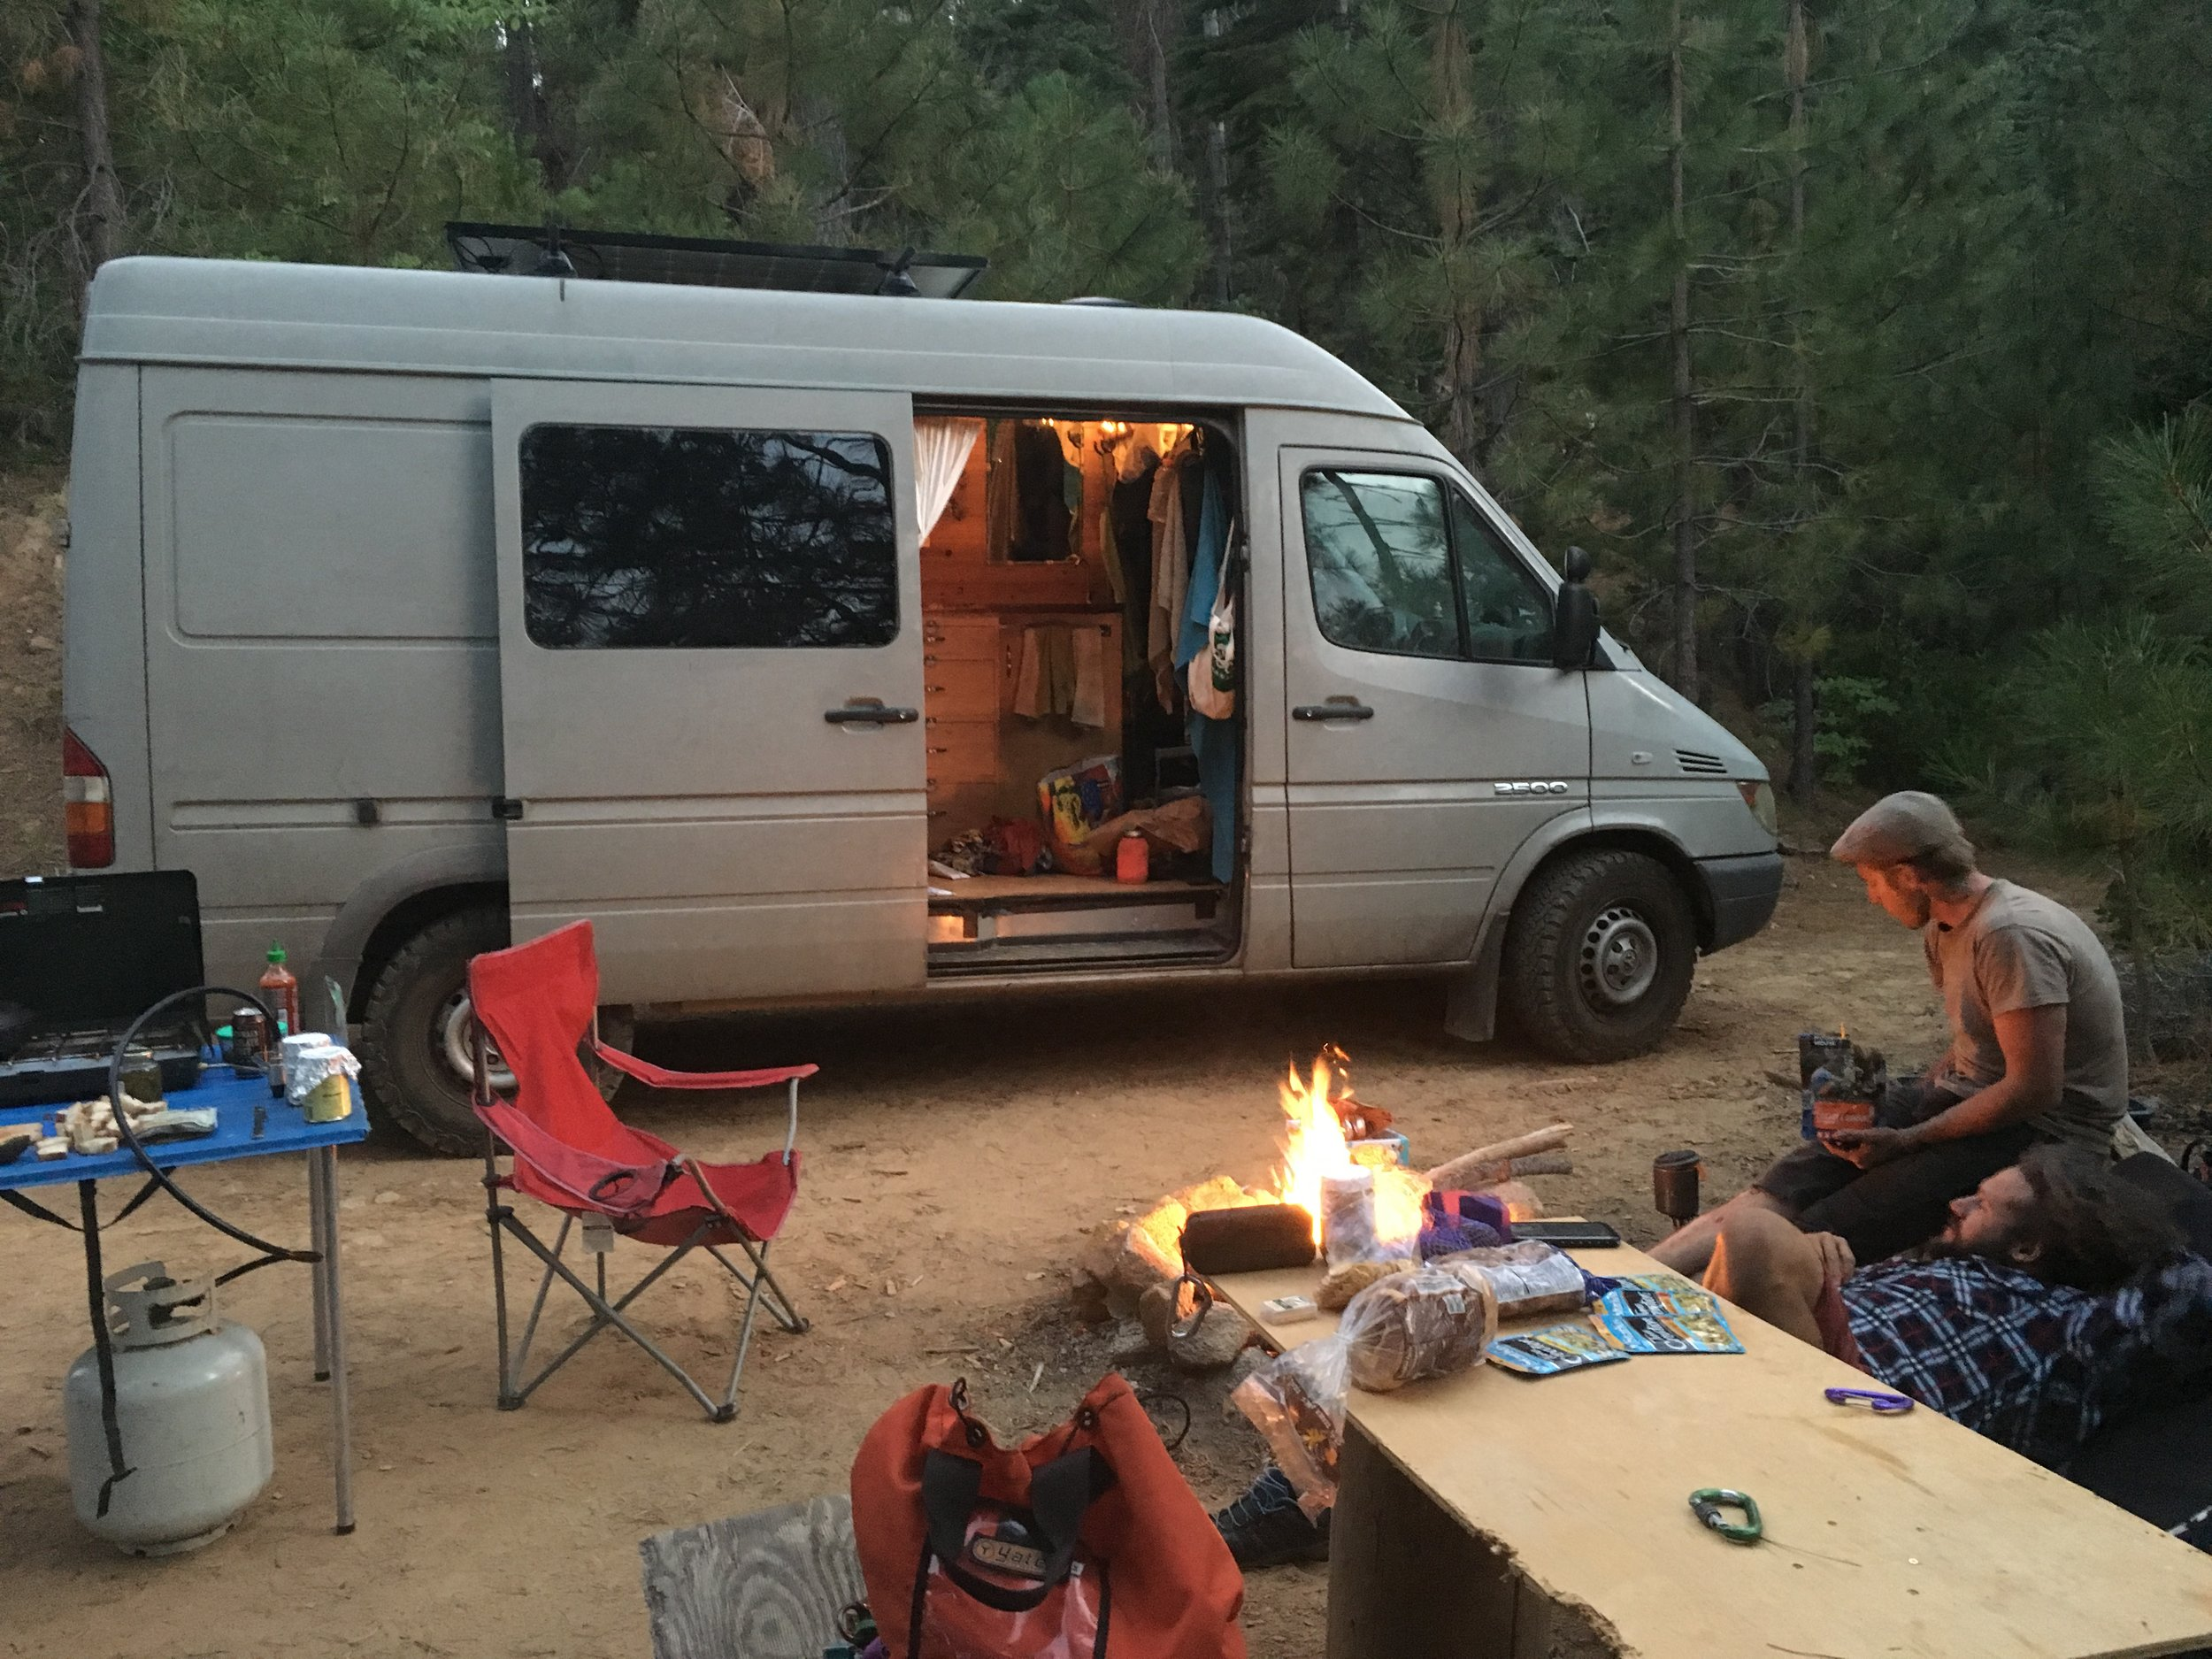 Unexpected Joys and Sorrows of Vanlife - One Chick Travels